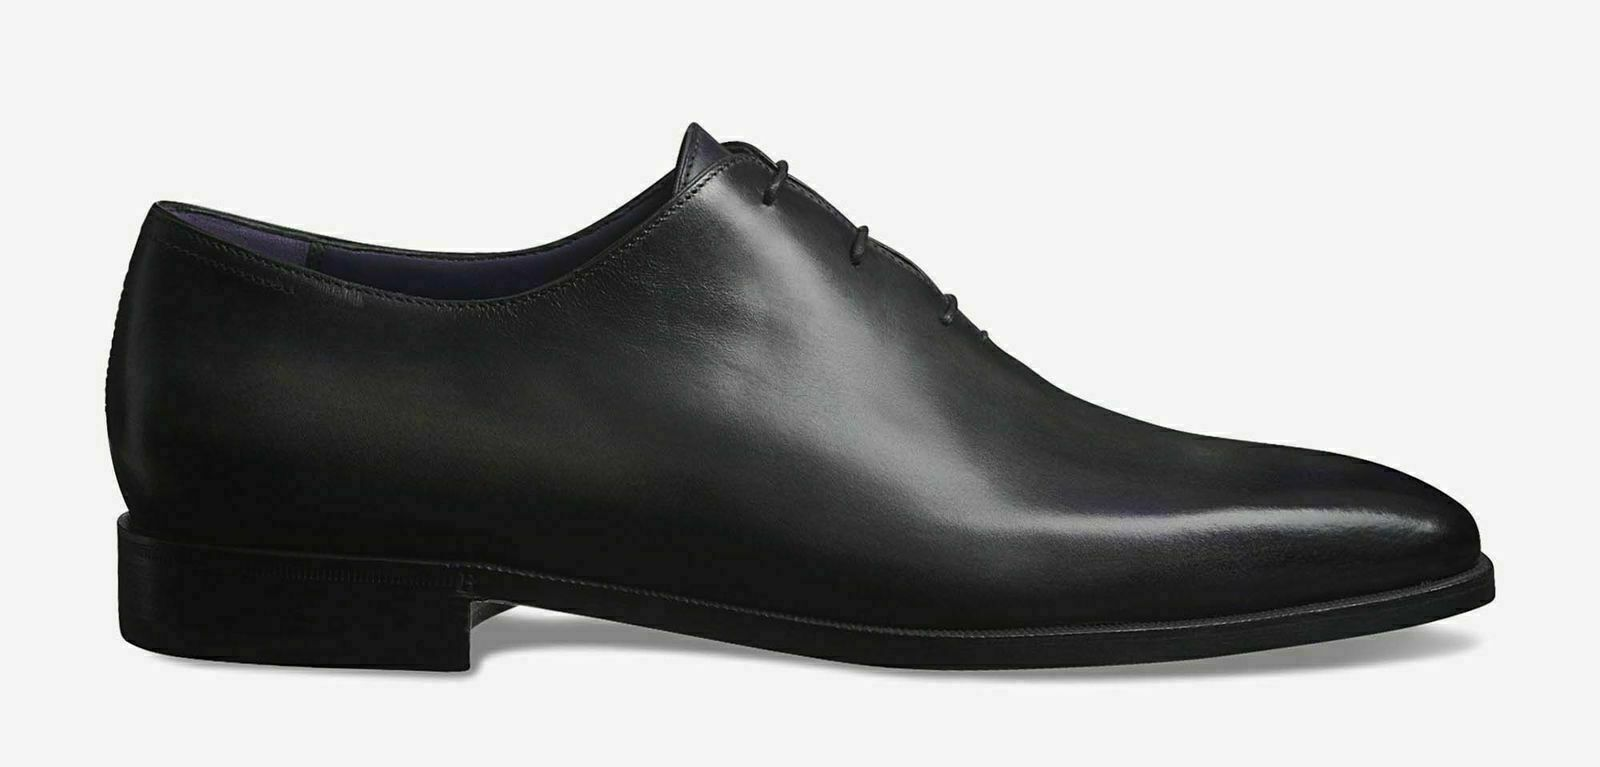 Mens Handmade scarpe Genuine nero Leather One Piece Lace Up Up Up Formal Wear avvio New ee9abe